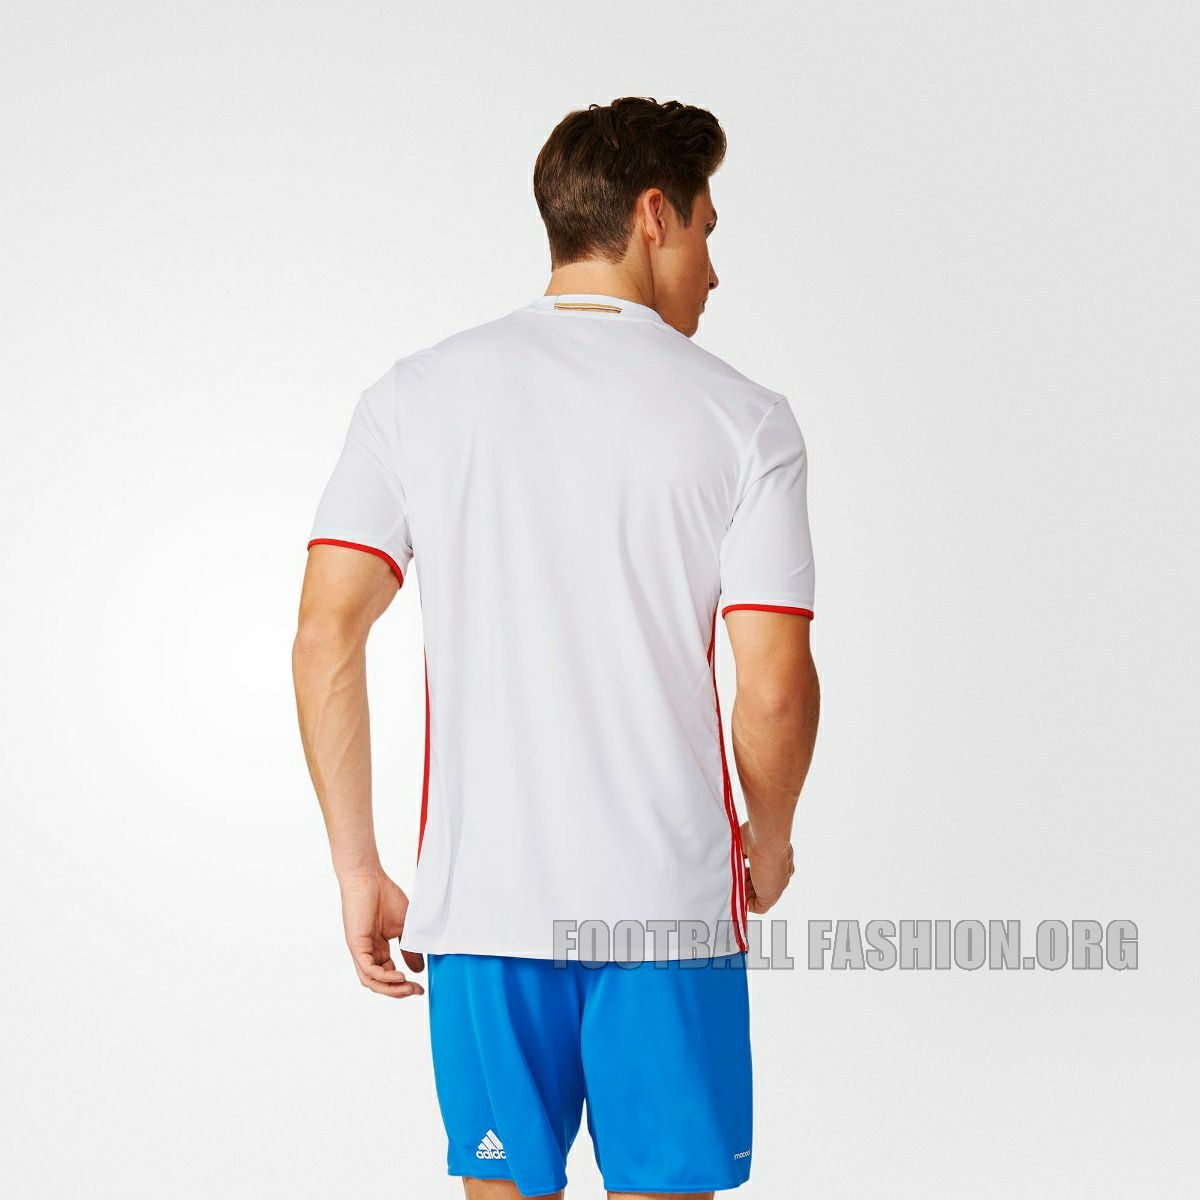 The mainly white Russia EURO 2016 away kit is in the colors of the  country s national flag. It features a rounded collar complemented by  bright red stripes ... 2599909ab5402